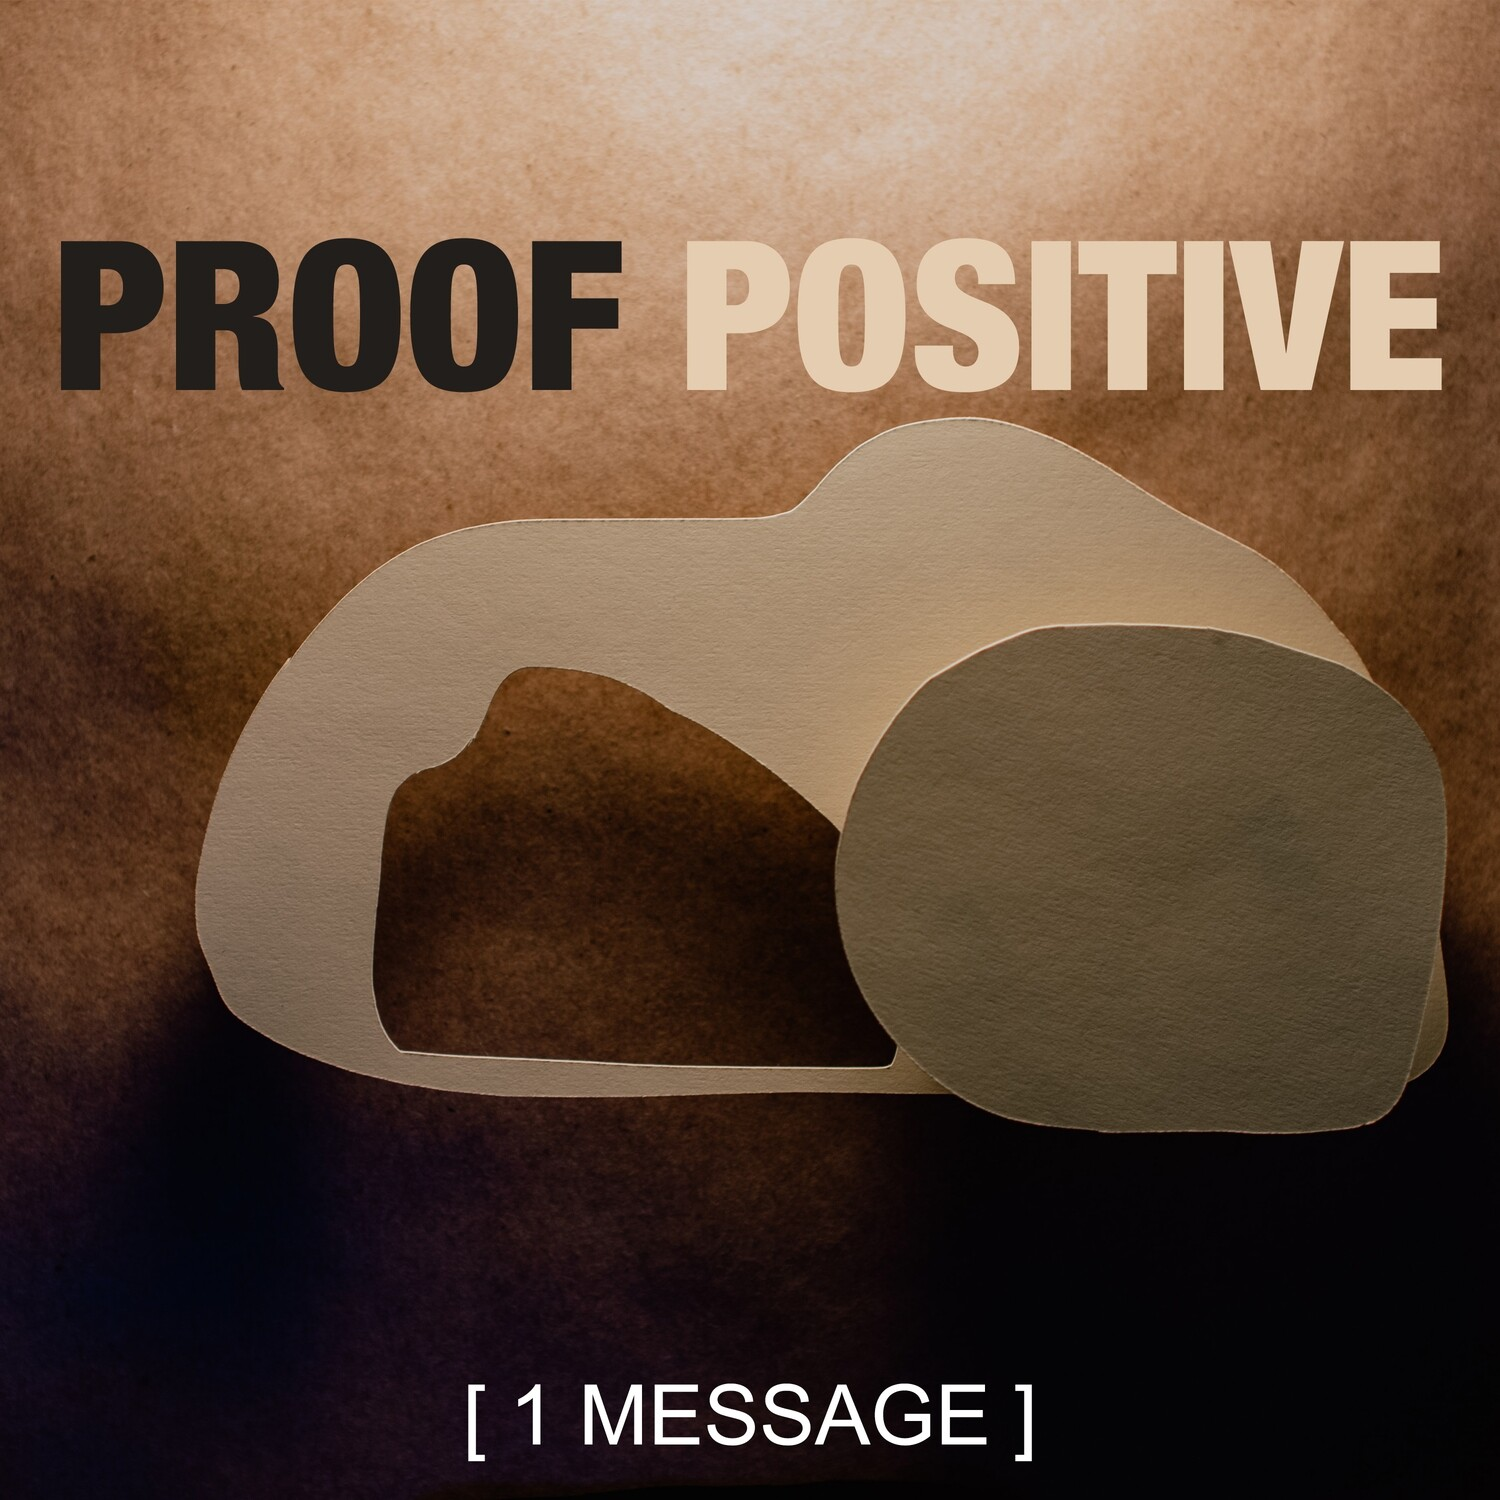 Proof Positive - Easter Message